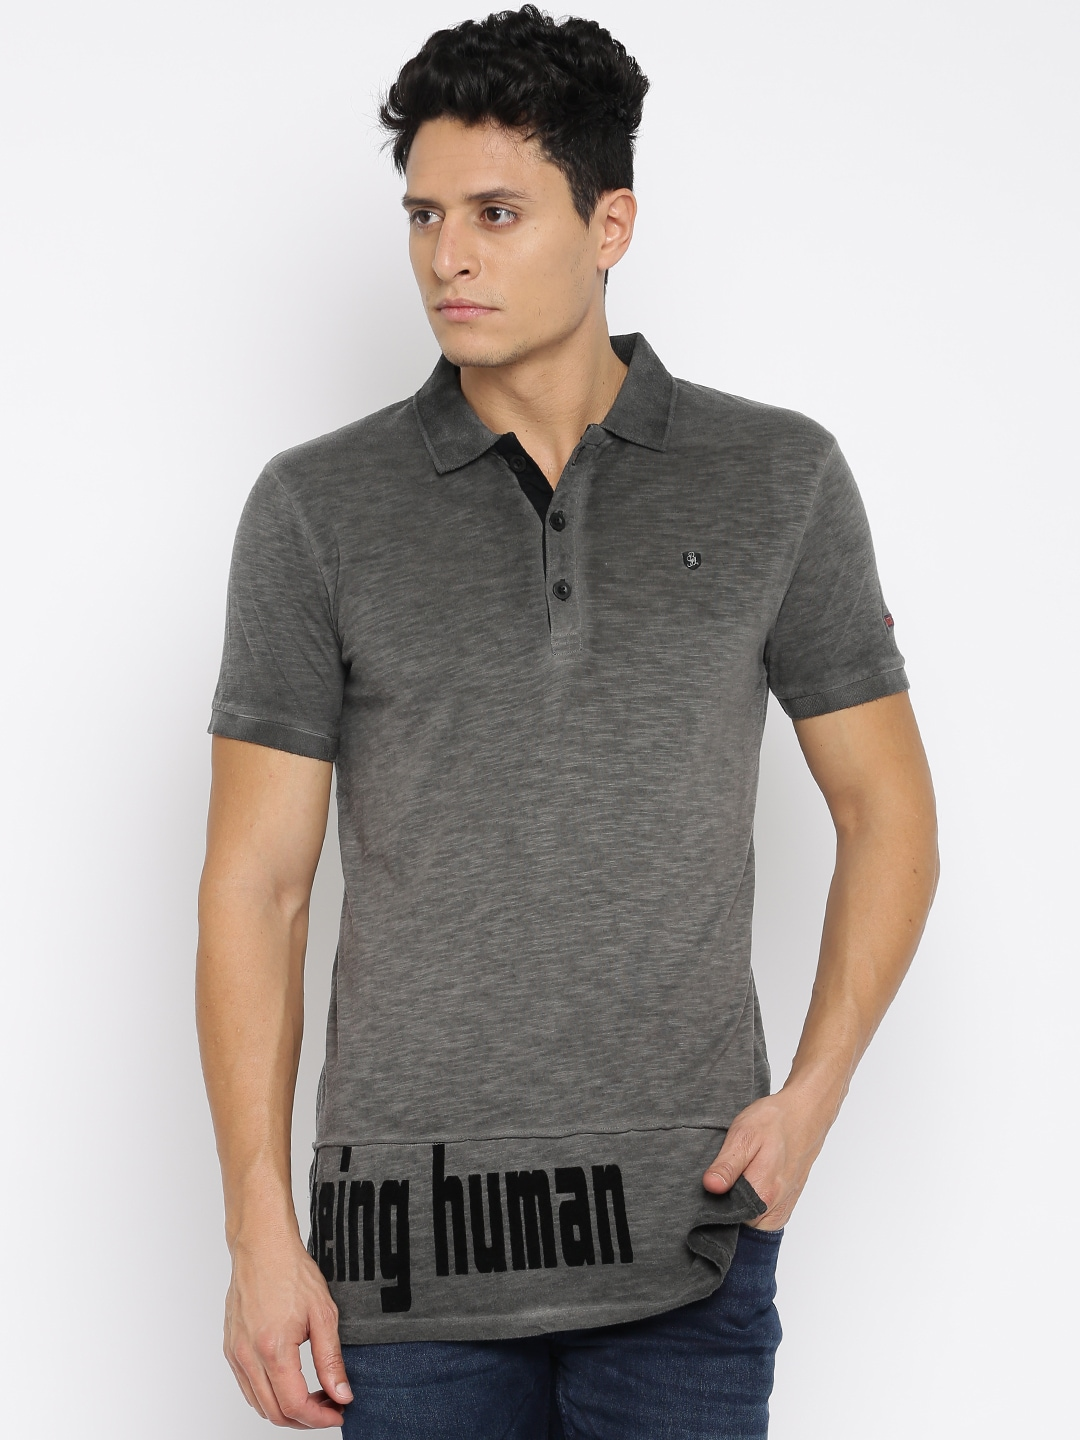 cb4df644 Being human bhp6578-black Men Charcoal Solid Polo Collar T Shirt- Price in  India